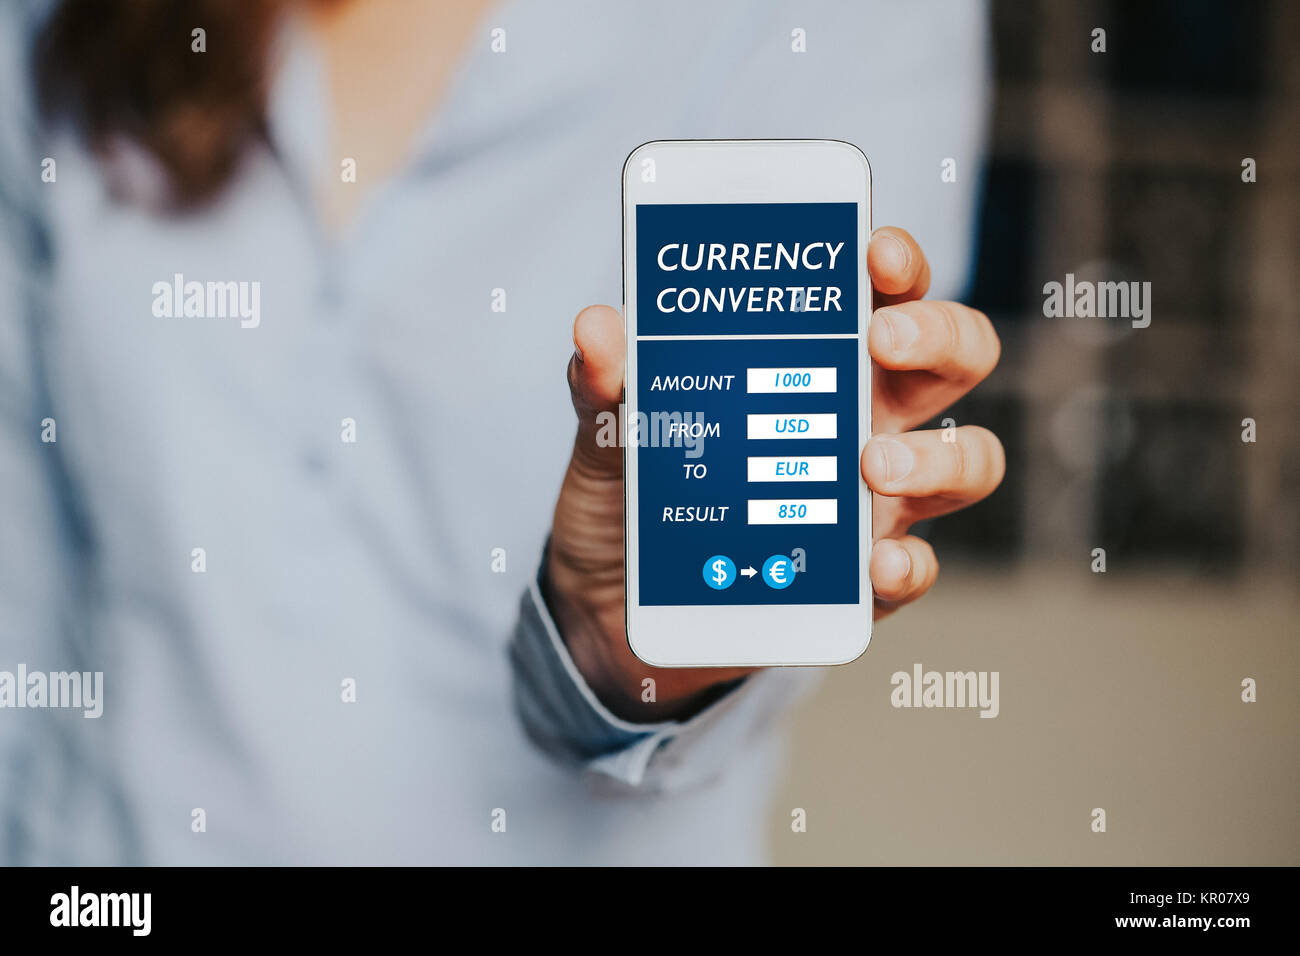 Woman holding a mobile phone with a currency converter app in the